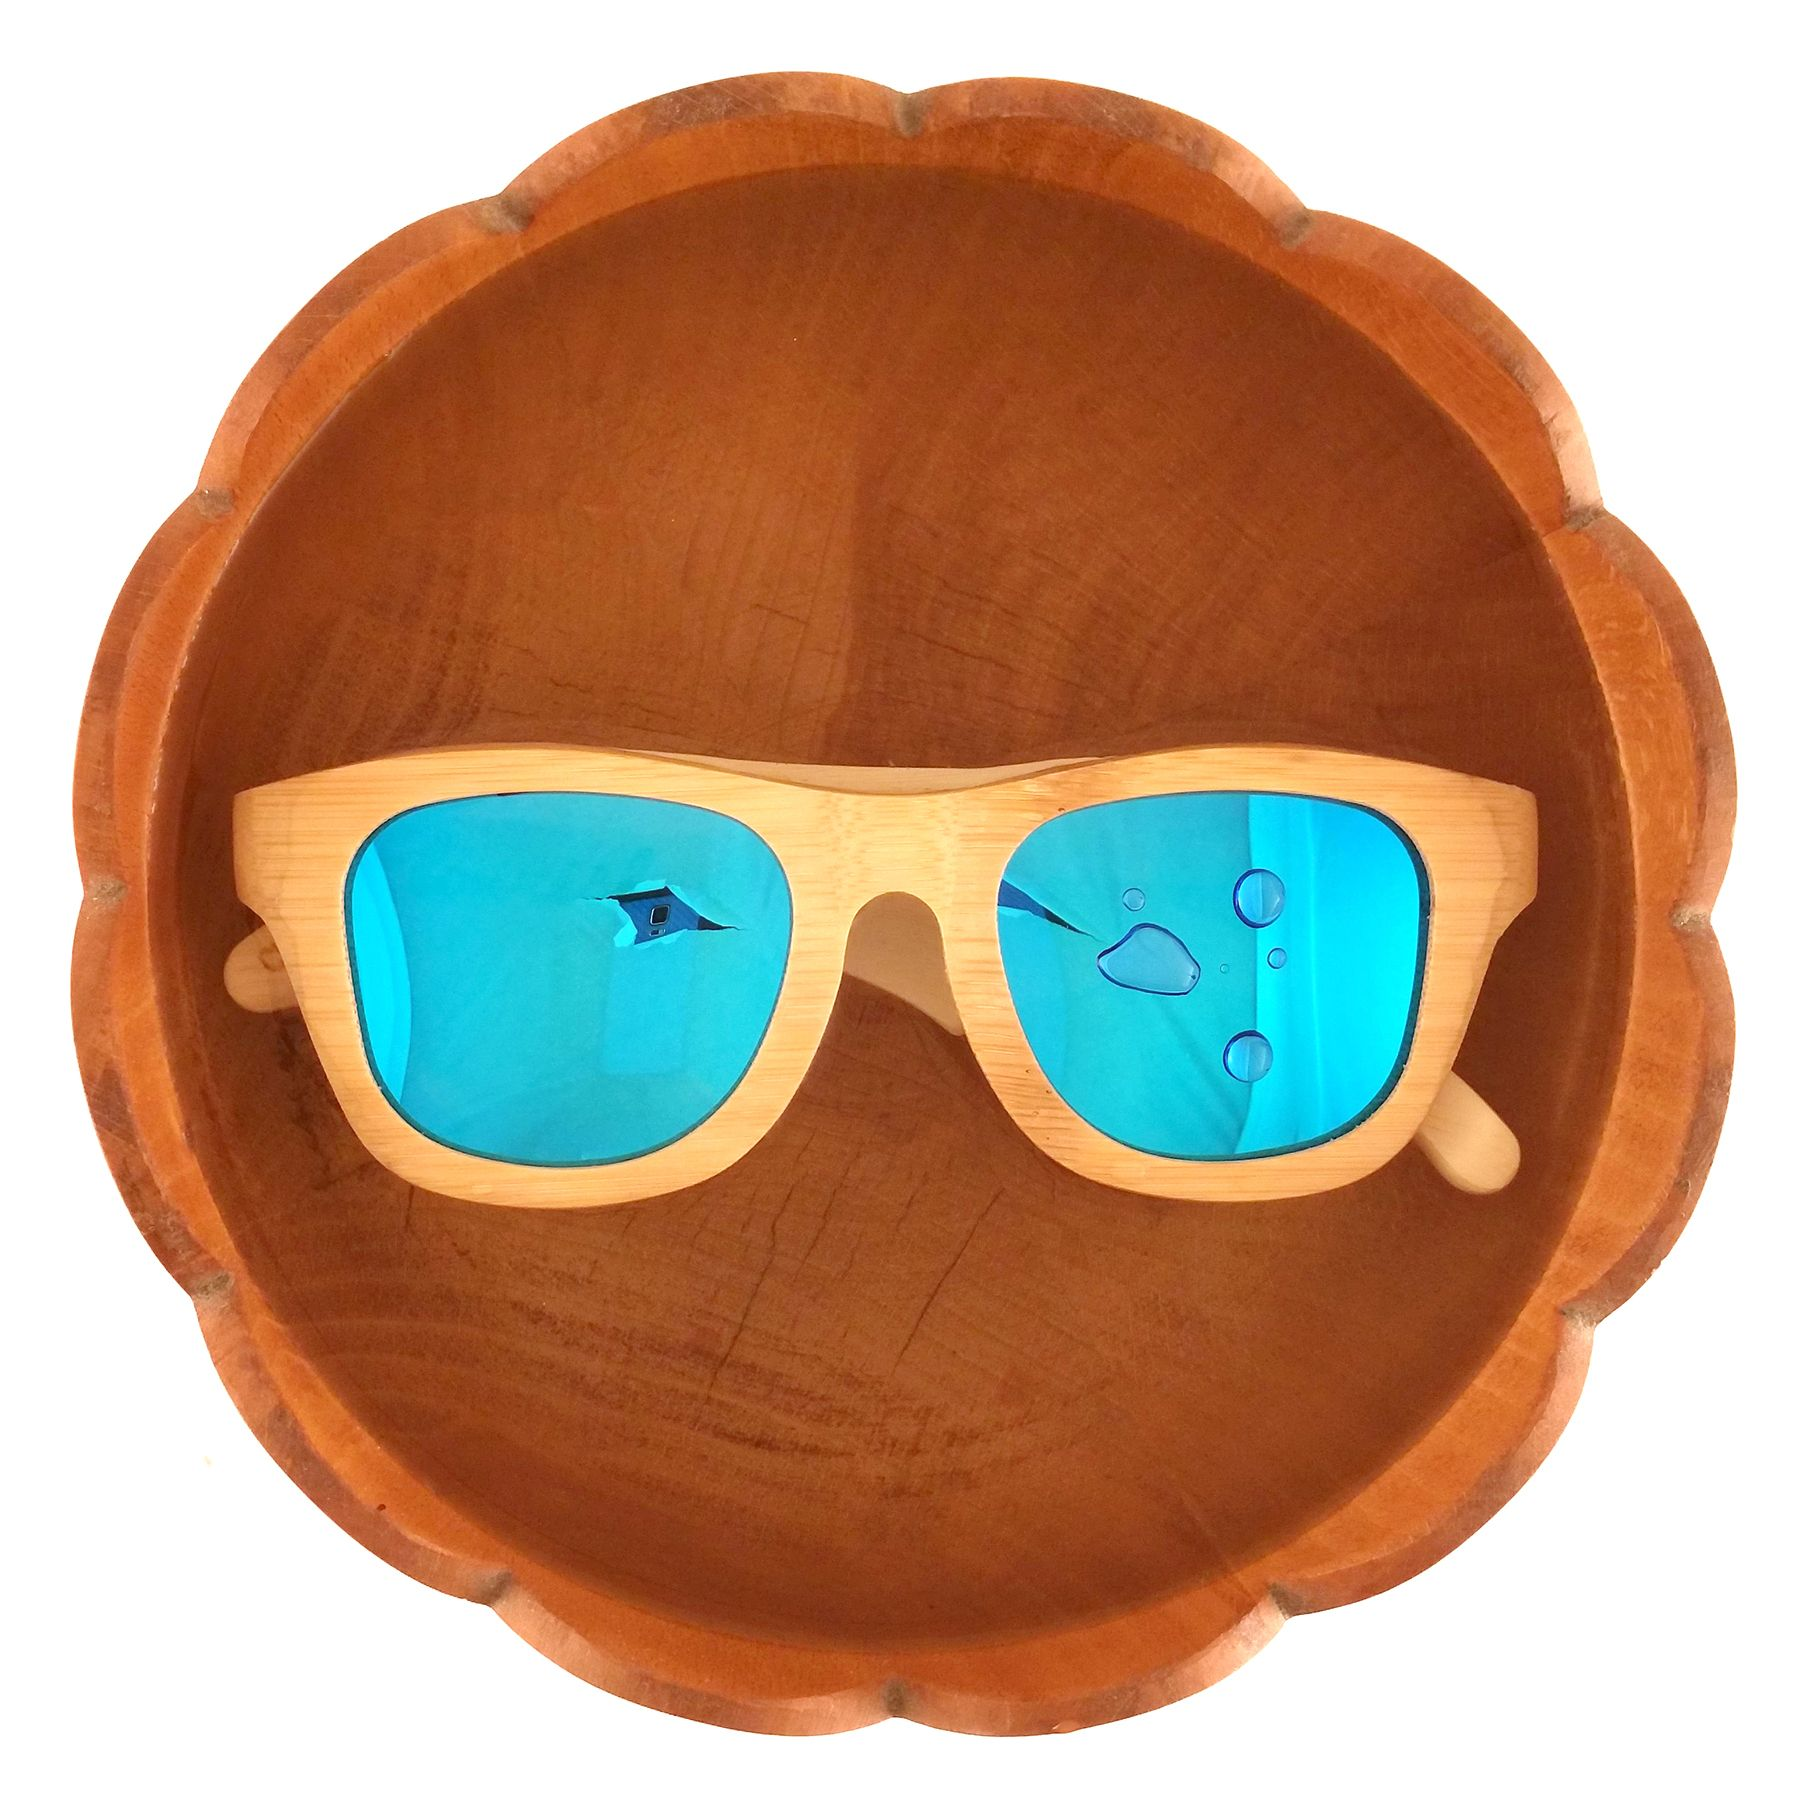 ba63e8cd31 Flourish blue polarized bamboo wood sunglasses from Thrive Shades. Yes